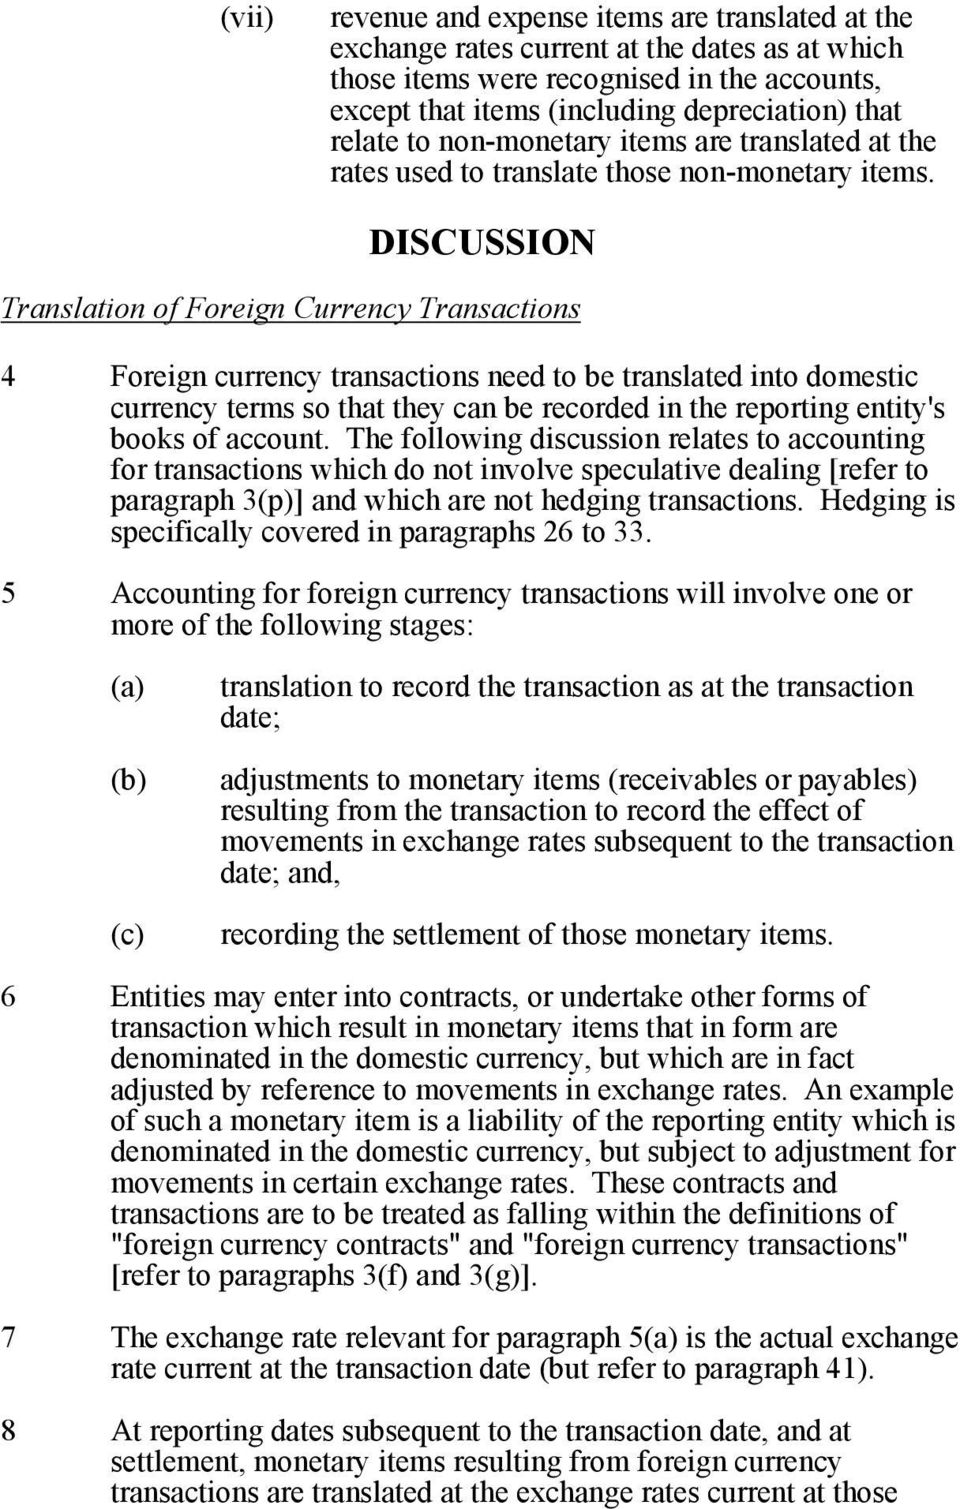 DISCUSSION Translation of Foreign Currency Transactions 4 Foreign currency transactions need to be translated into domestic currency terms so that they can be recorded in the reporting entity's books